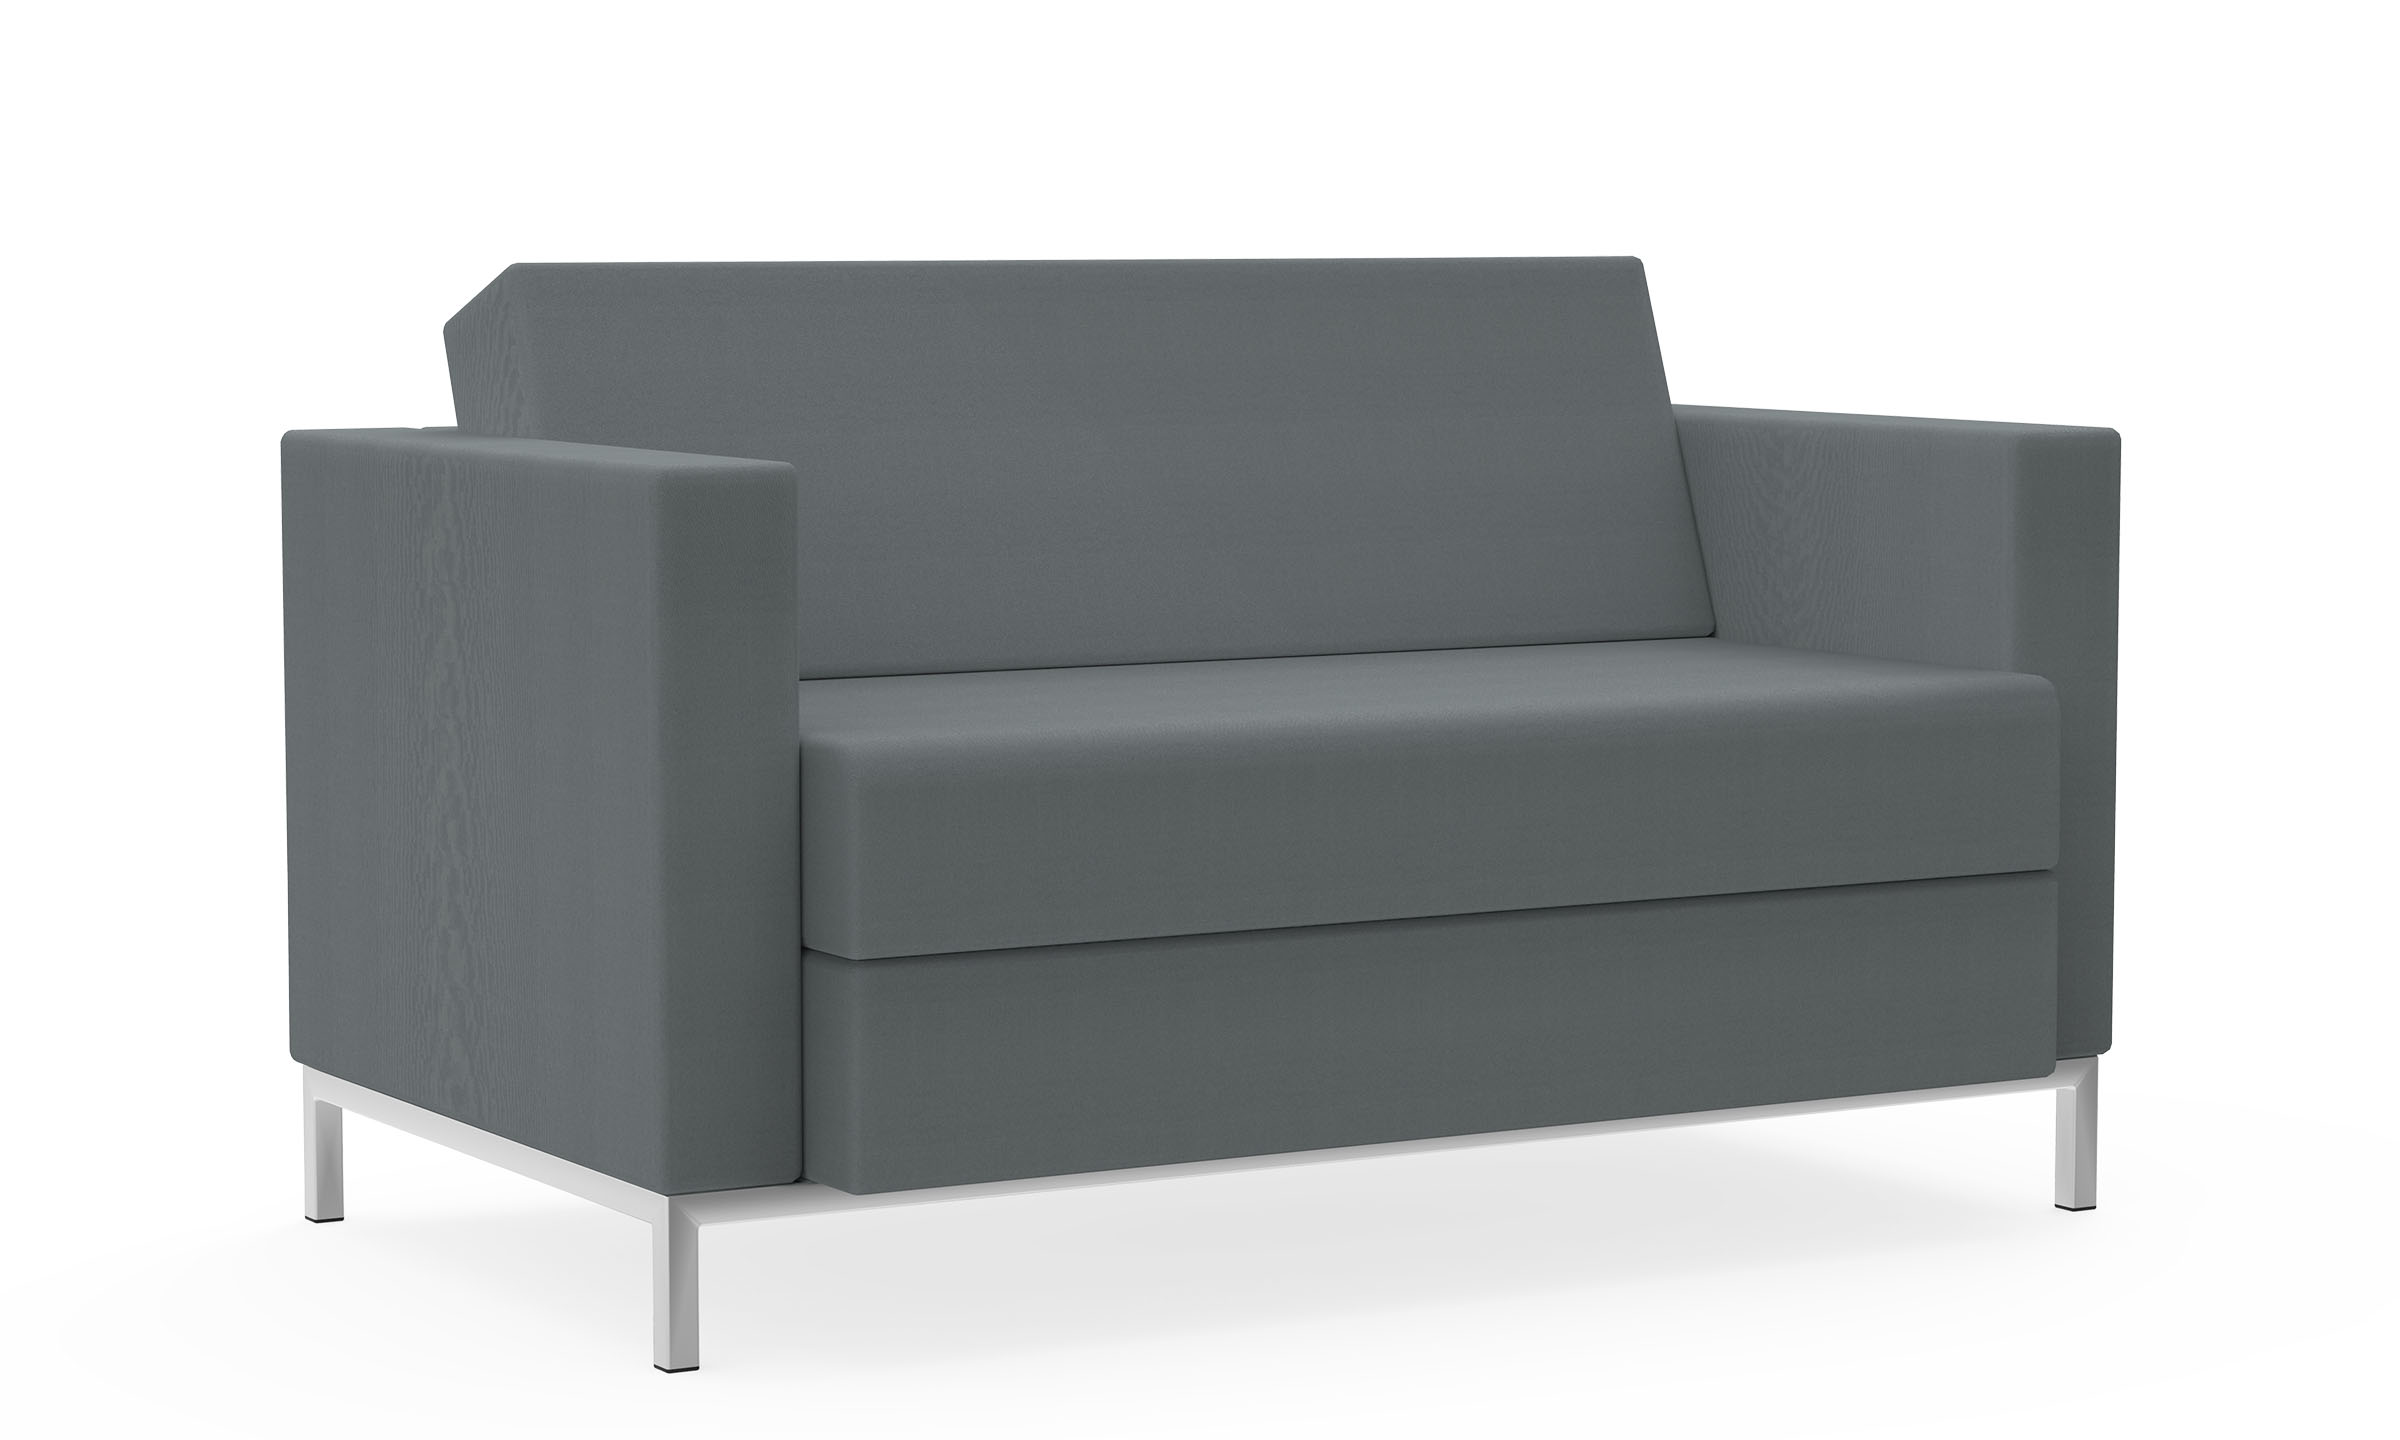 Two-Seat Sofa, Duo Cushion, Left & Right Arms Model Thumbnail